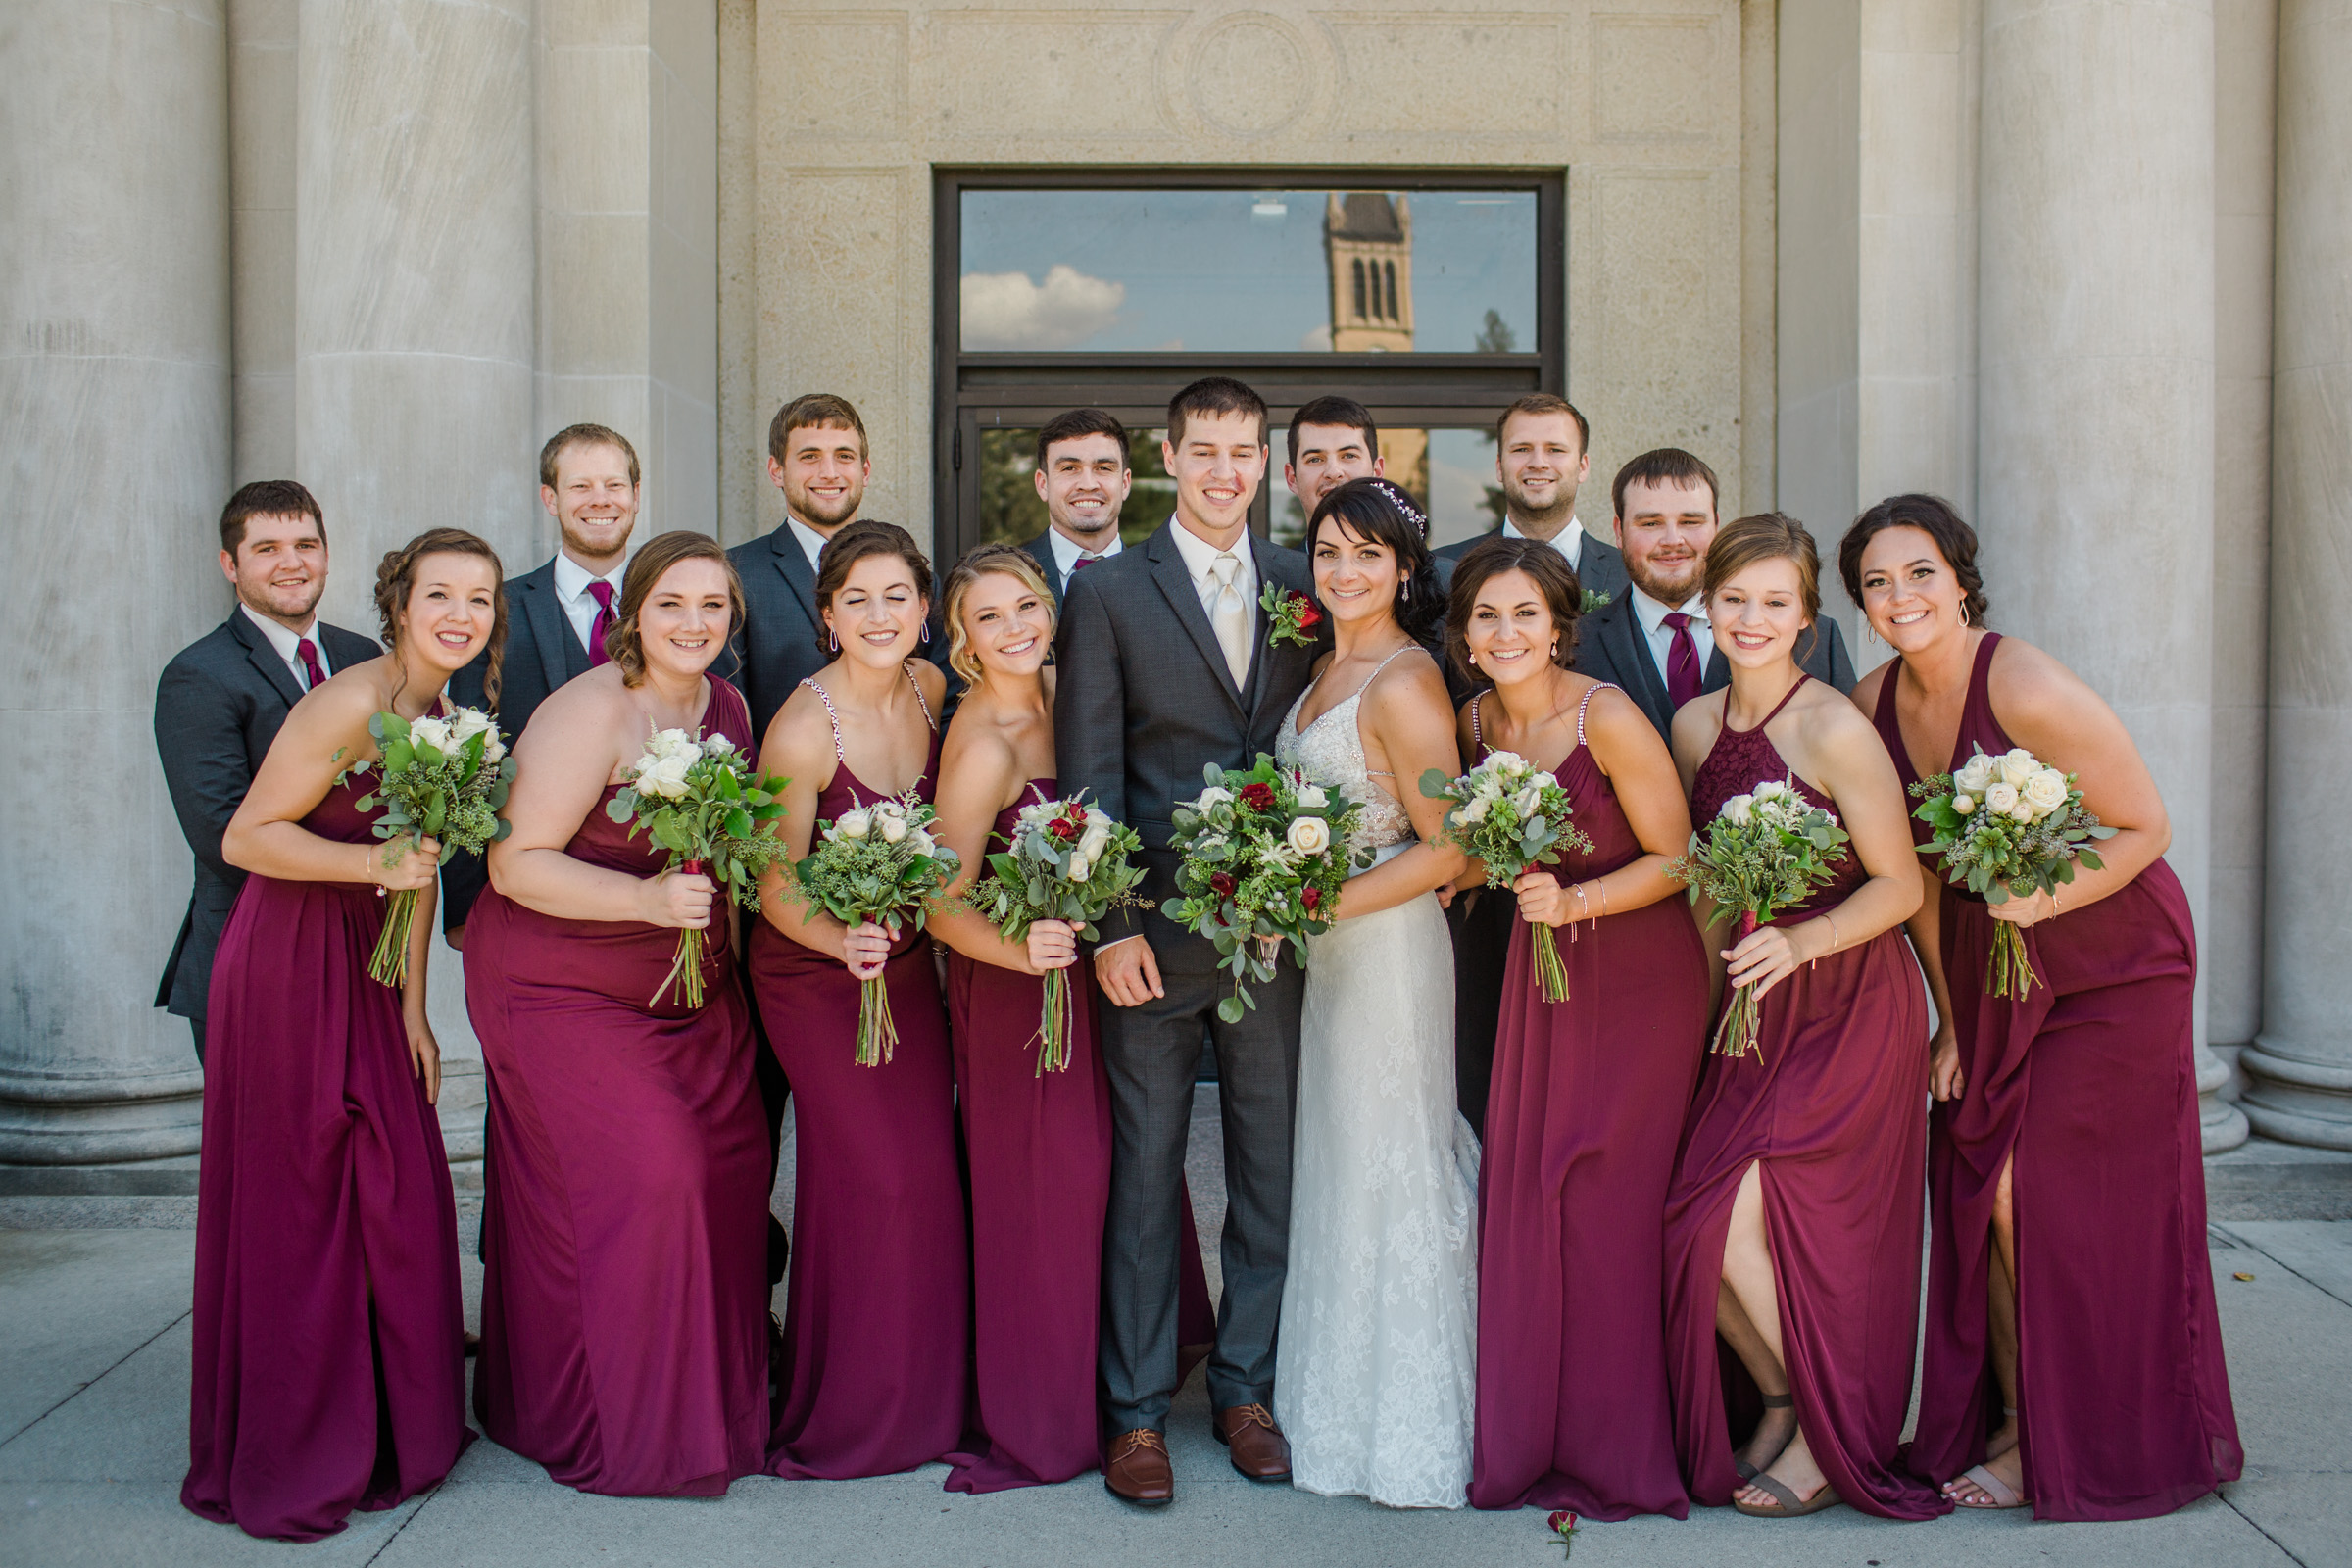 amelia renee photography bride groom bridal party group